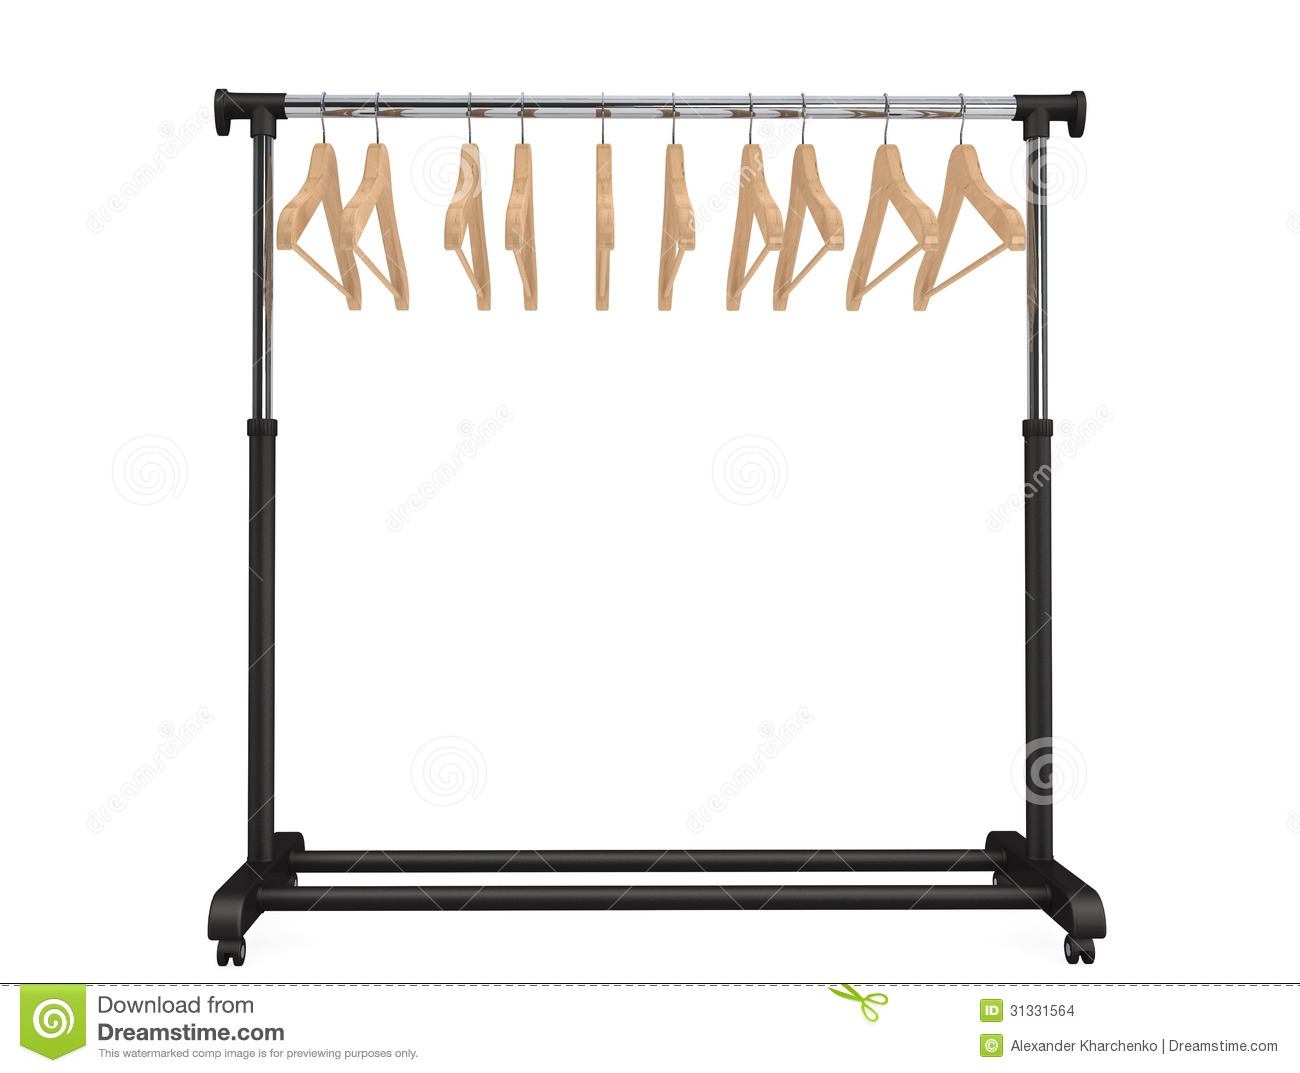 Collection Black Coat Rack Pictures.